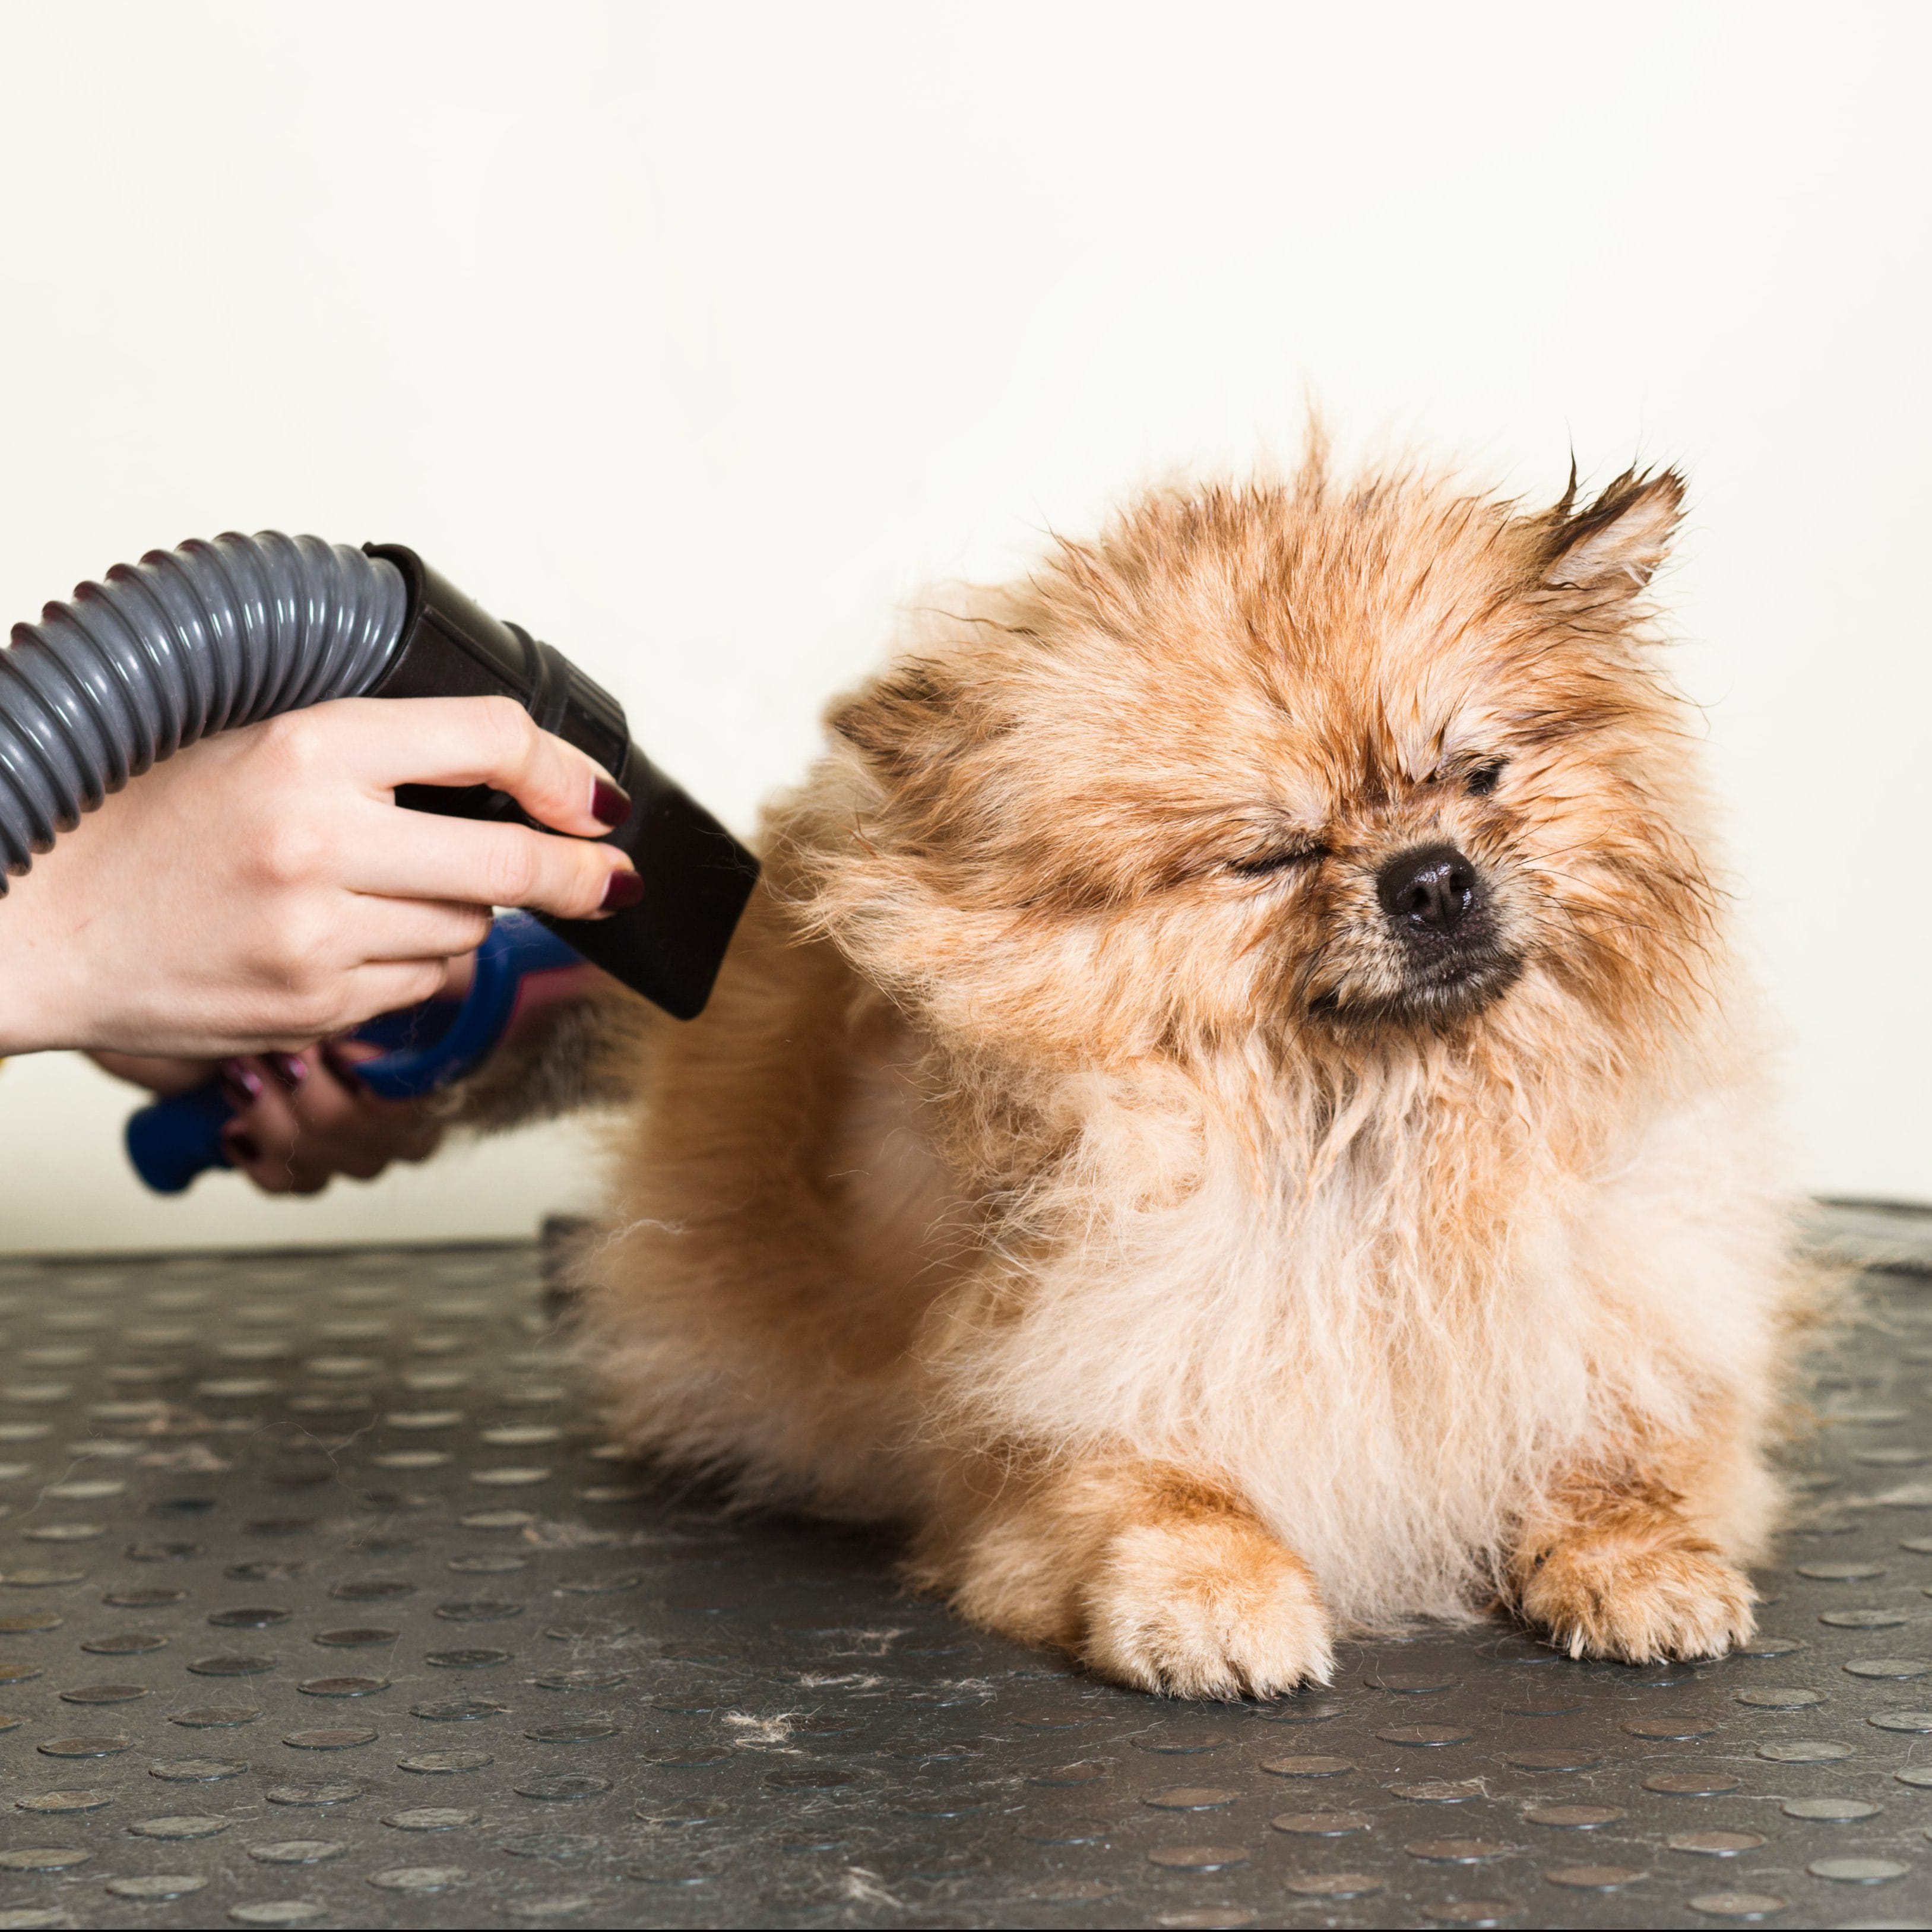 How To Prevent Lung Damage From Pet Grooming | Groomers | Blog